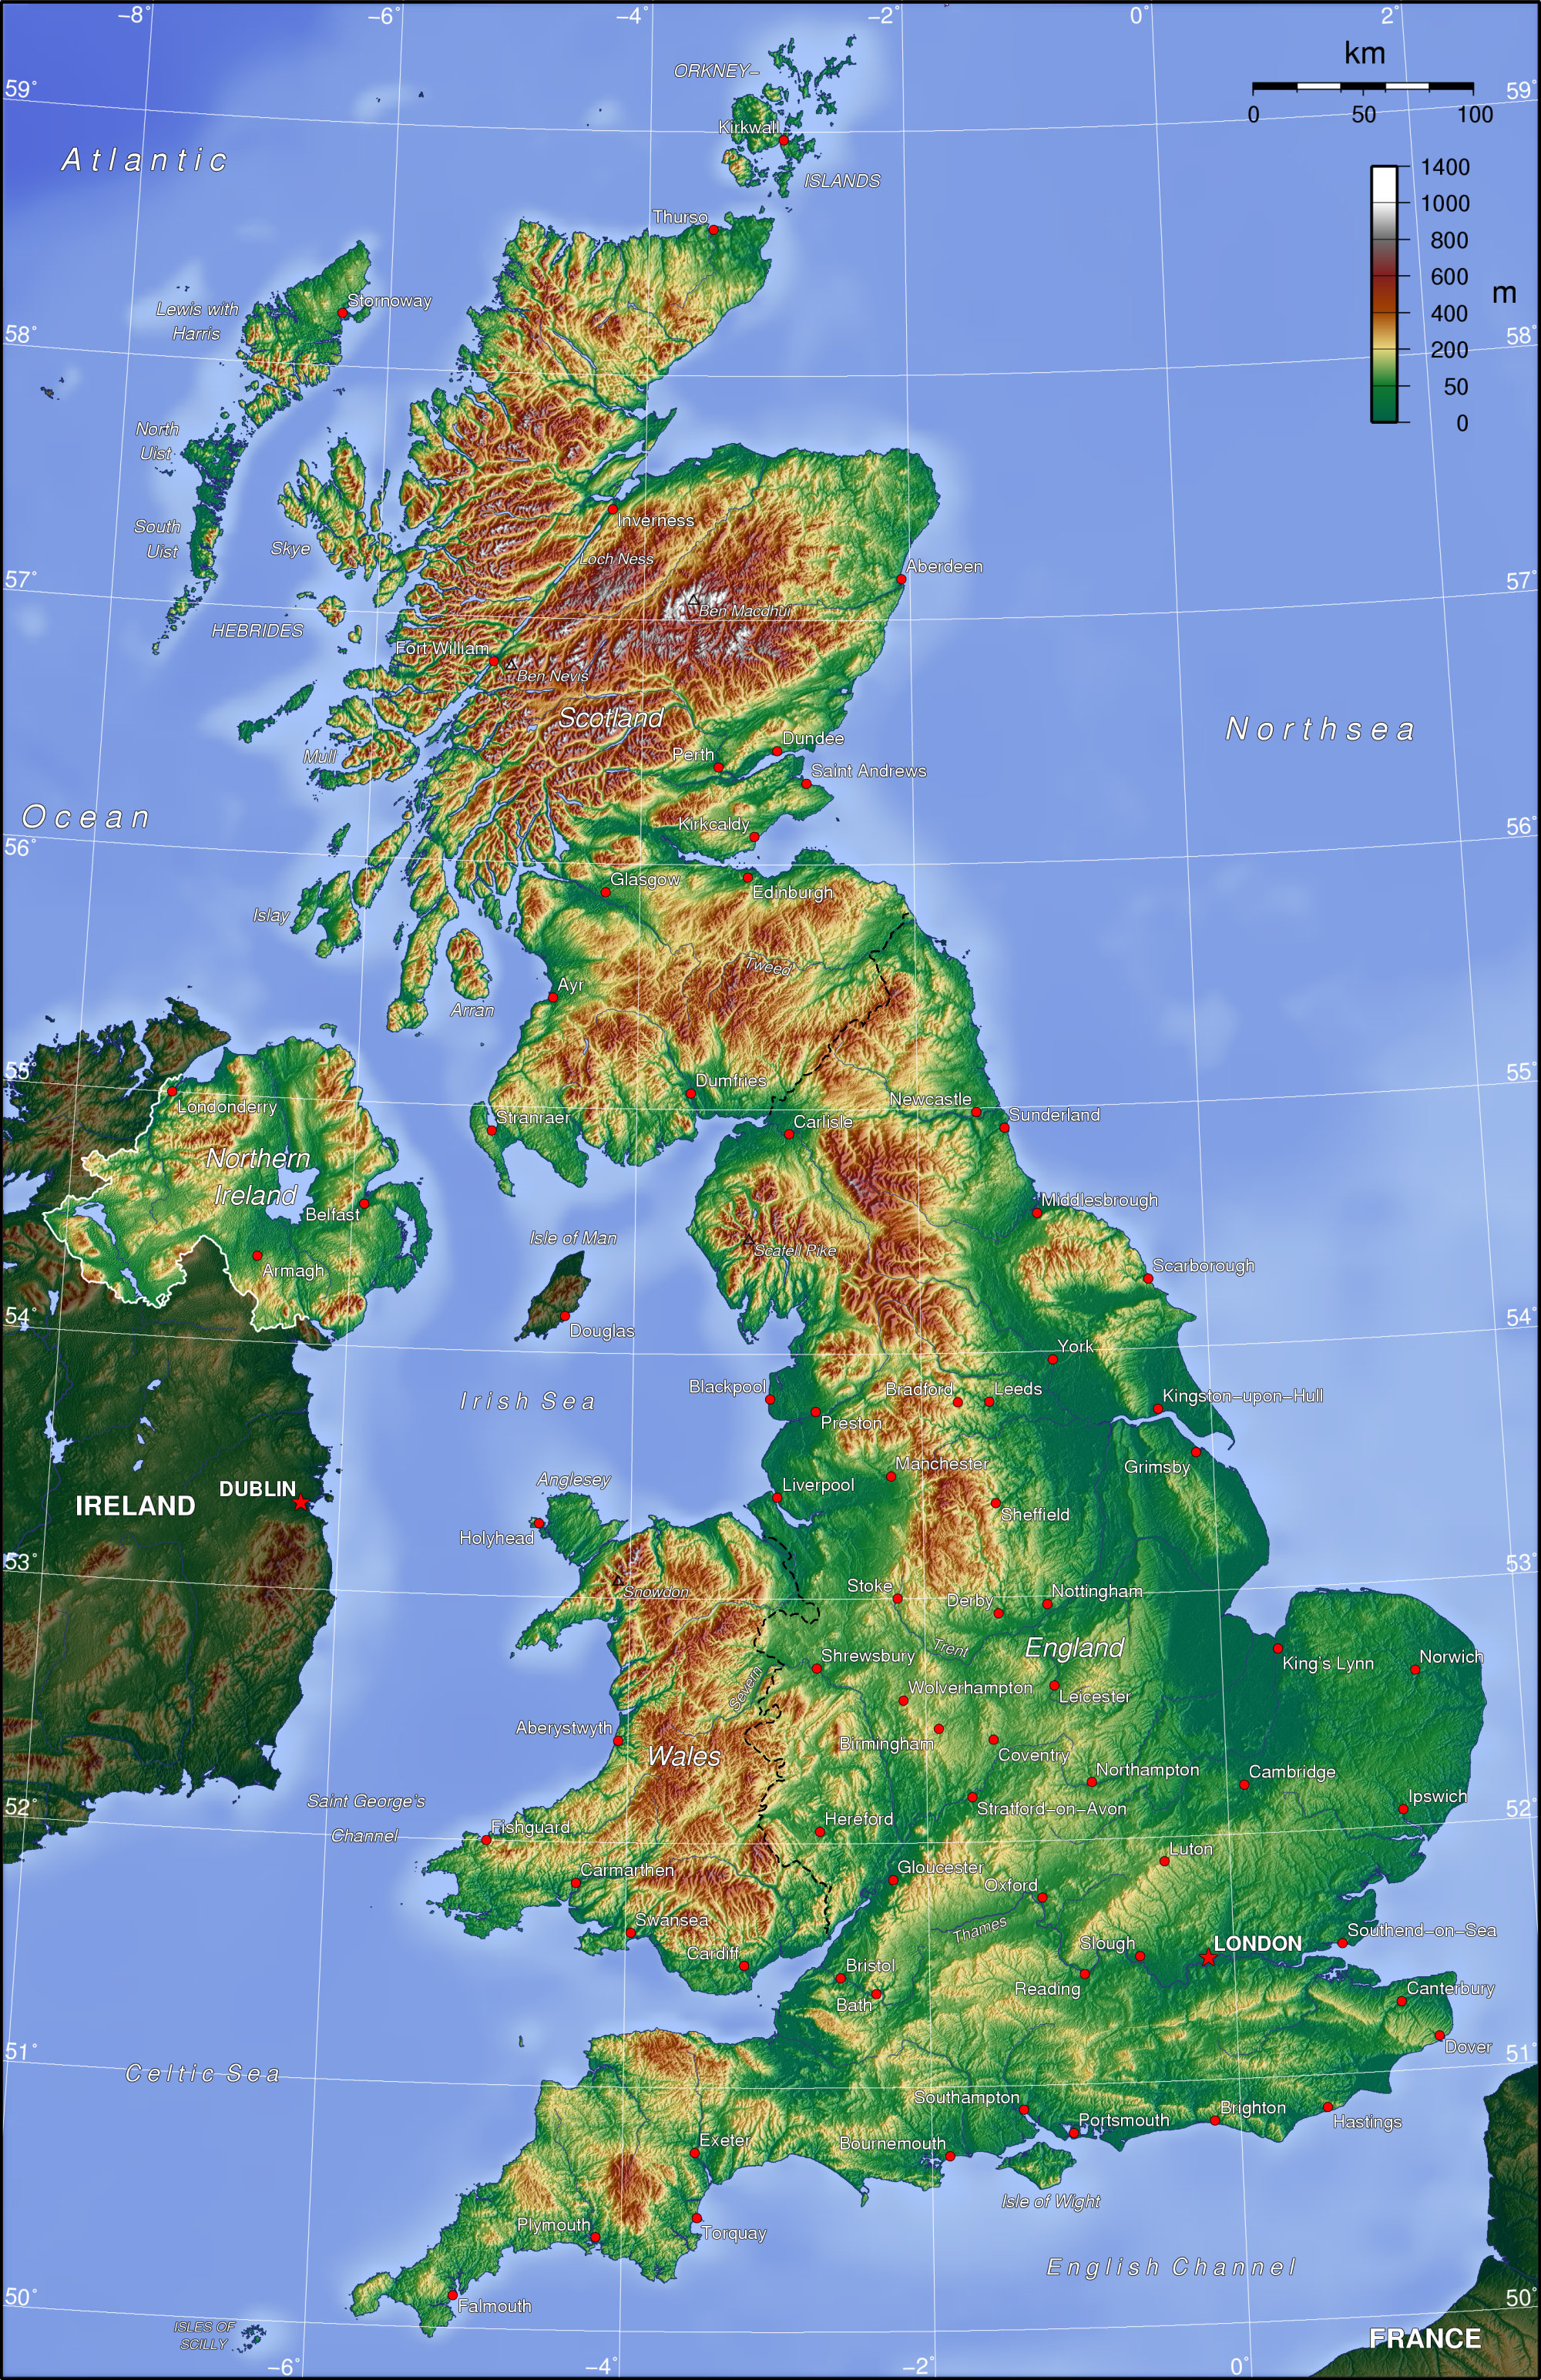 FileUk Topo Enjpg Wikimedia Commons - Topographic map of united kingdom